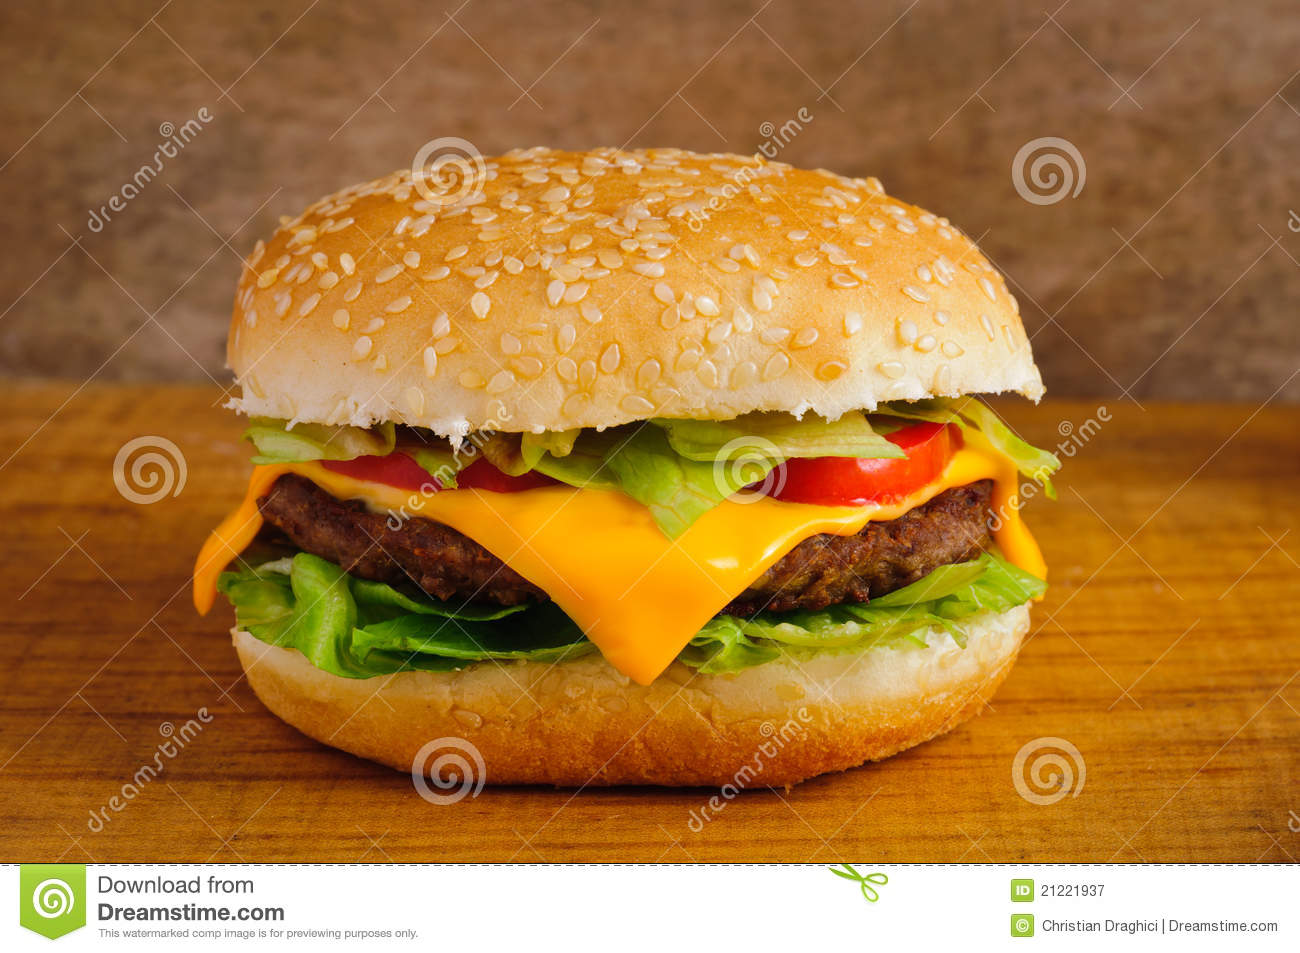 Hamburger Closeup Royalty Free Stock Photography - Image: 21221937